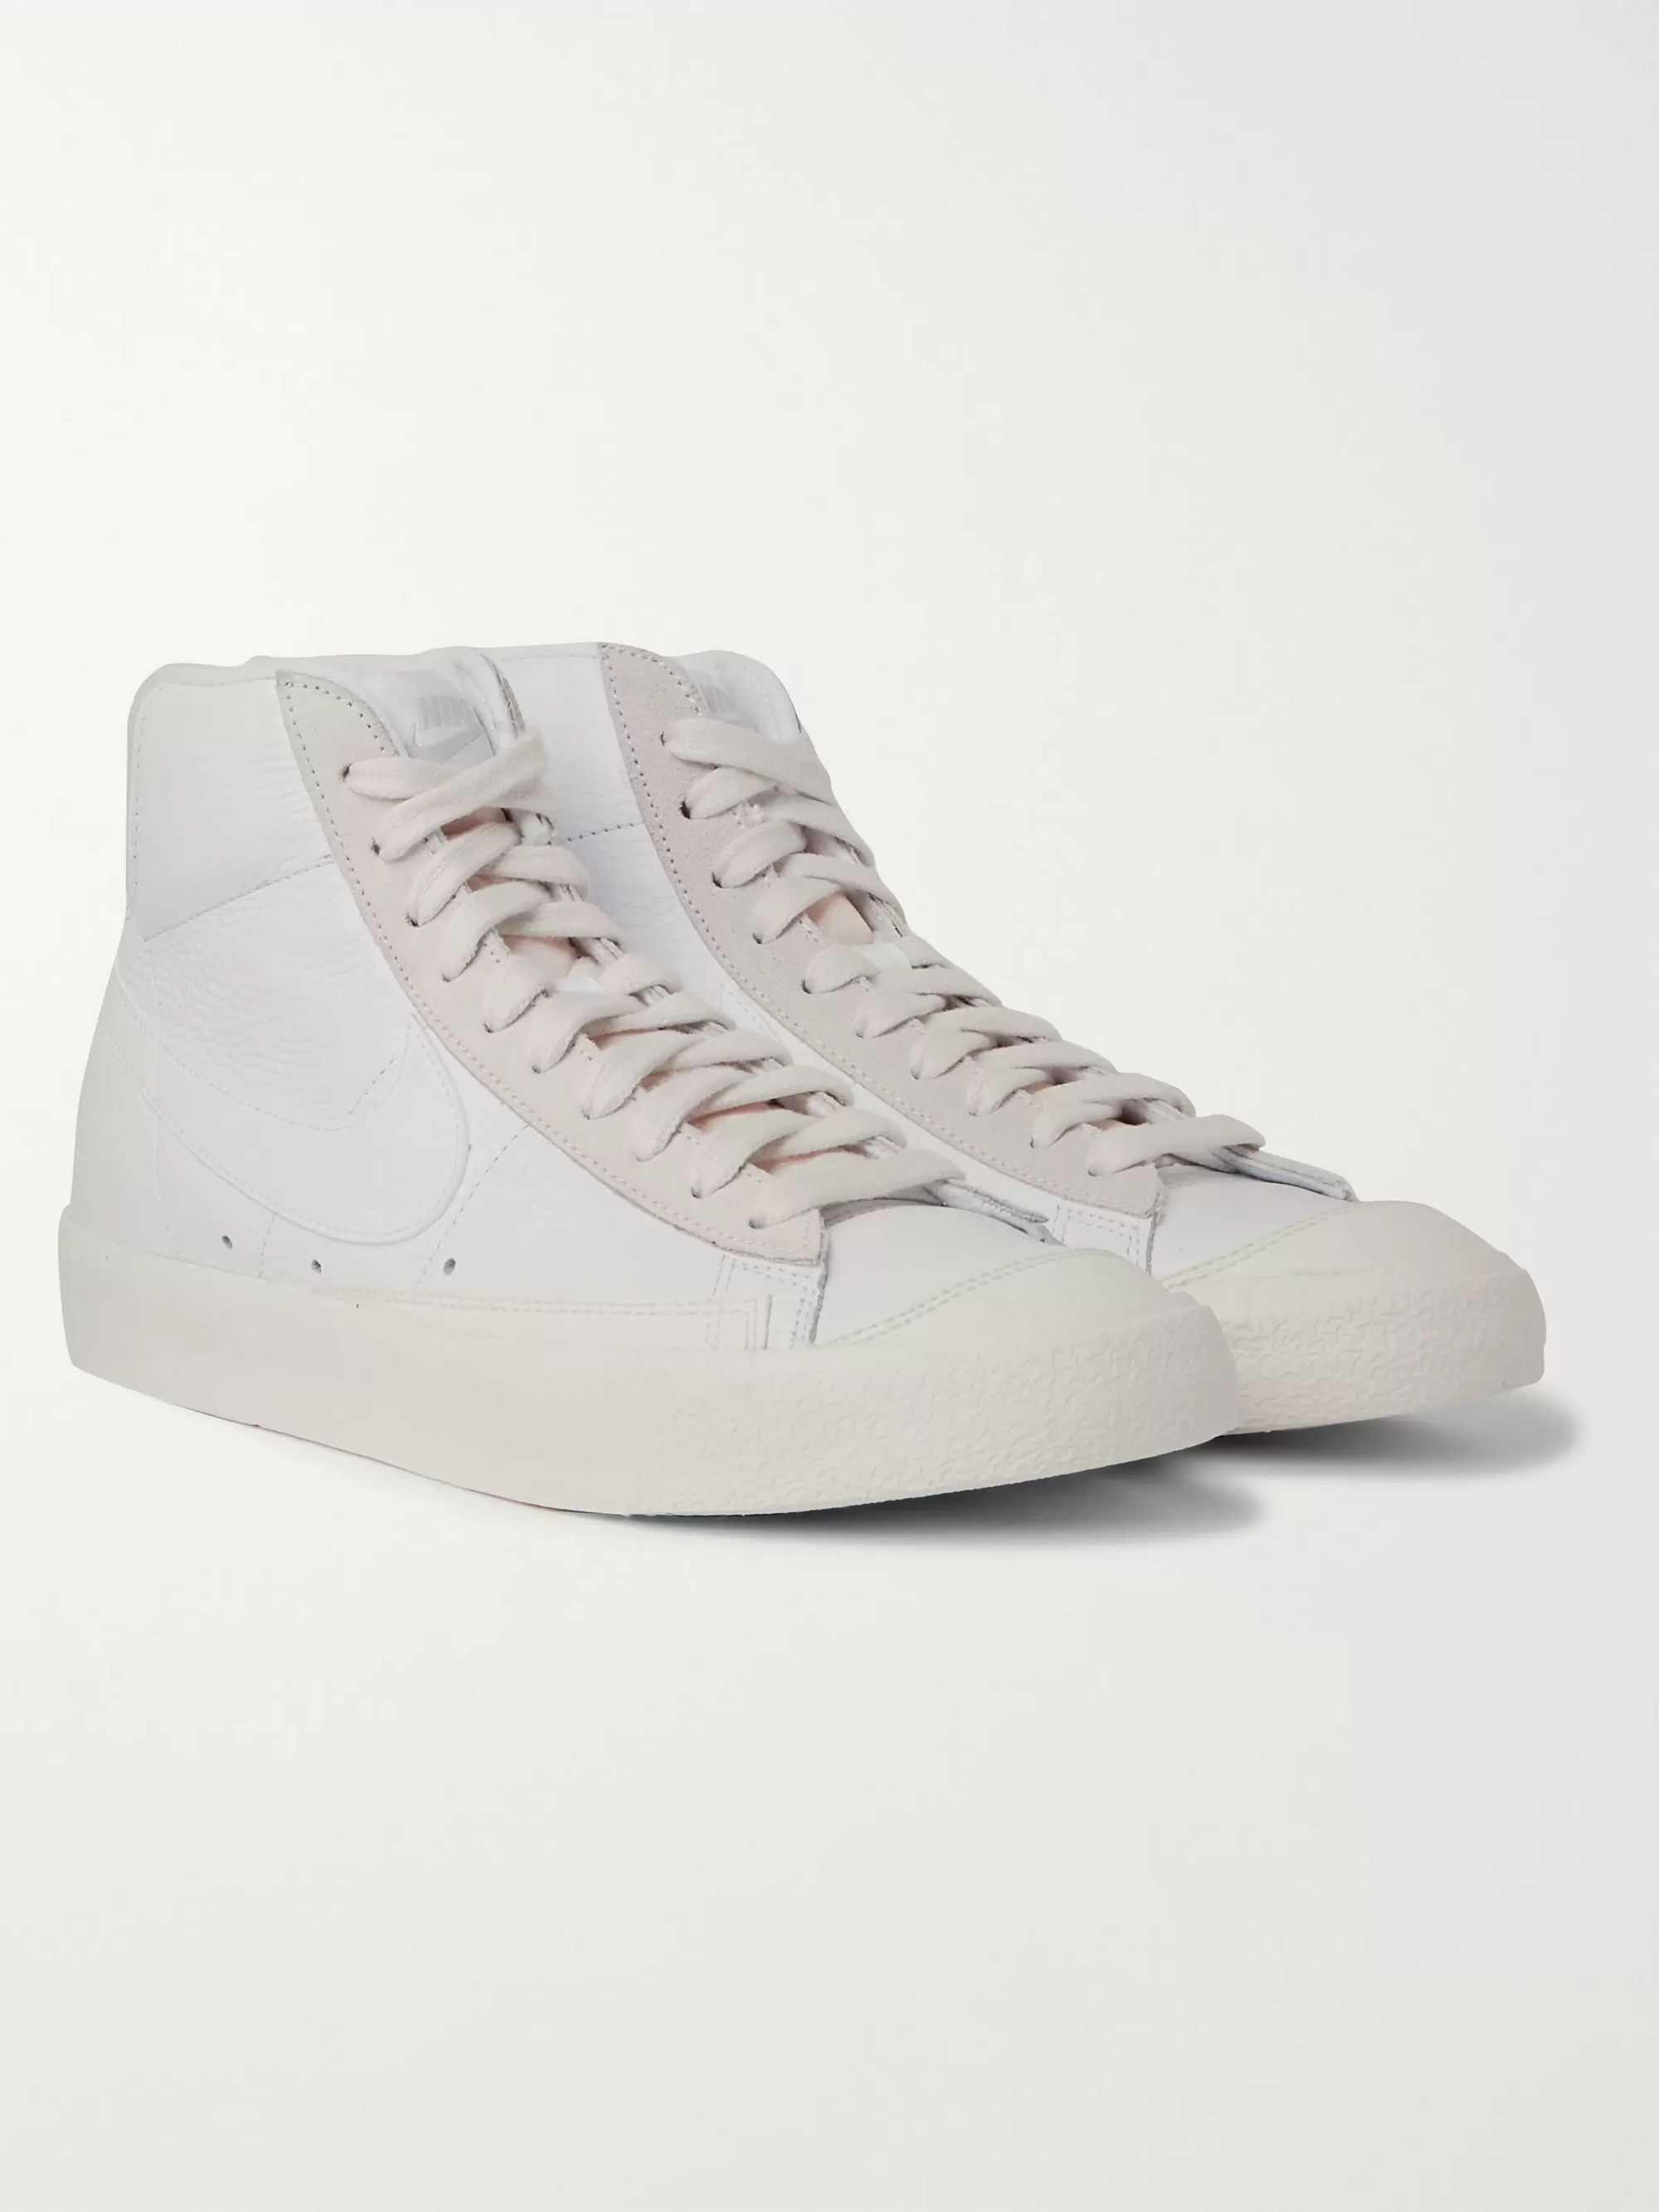 raíz Espectacular rápido  White Blazer Mid '77 Vintage Suede-Trimmed Leather High-Top Sneakers | Nike  | MR PORTER